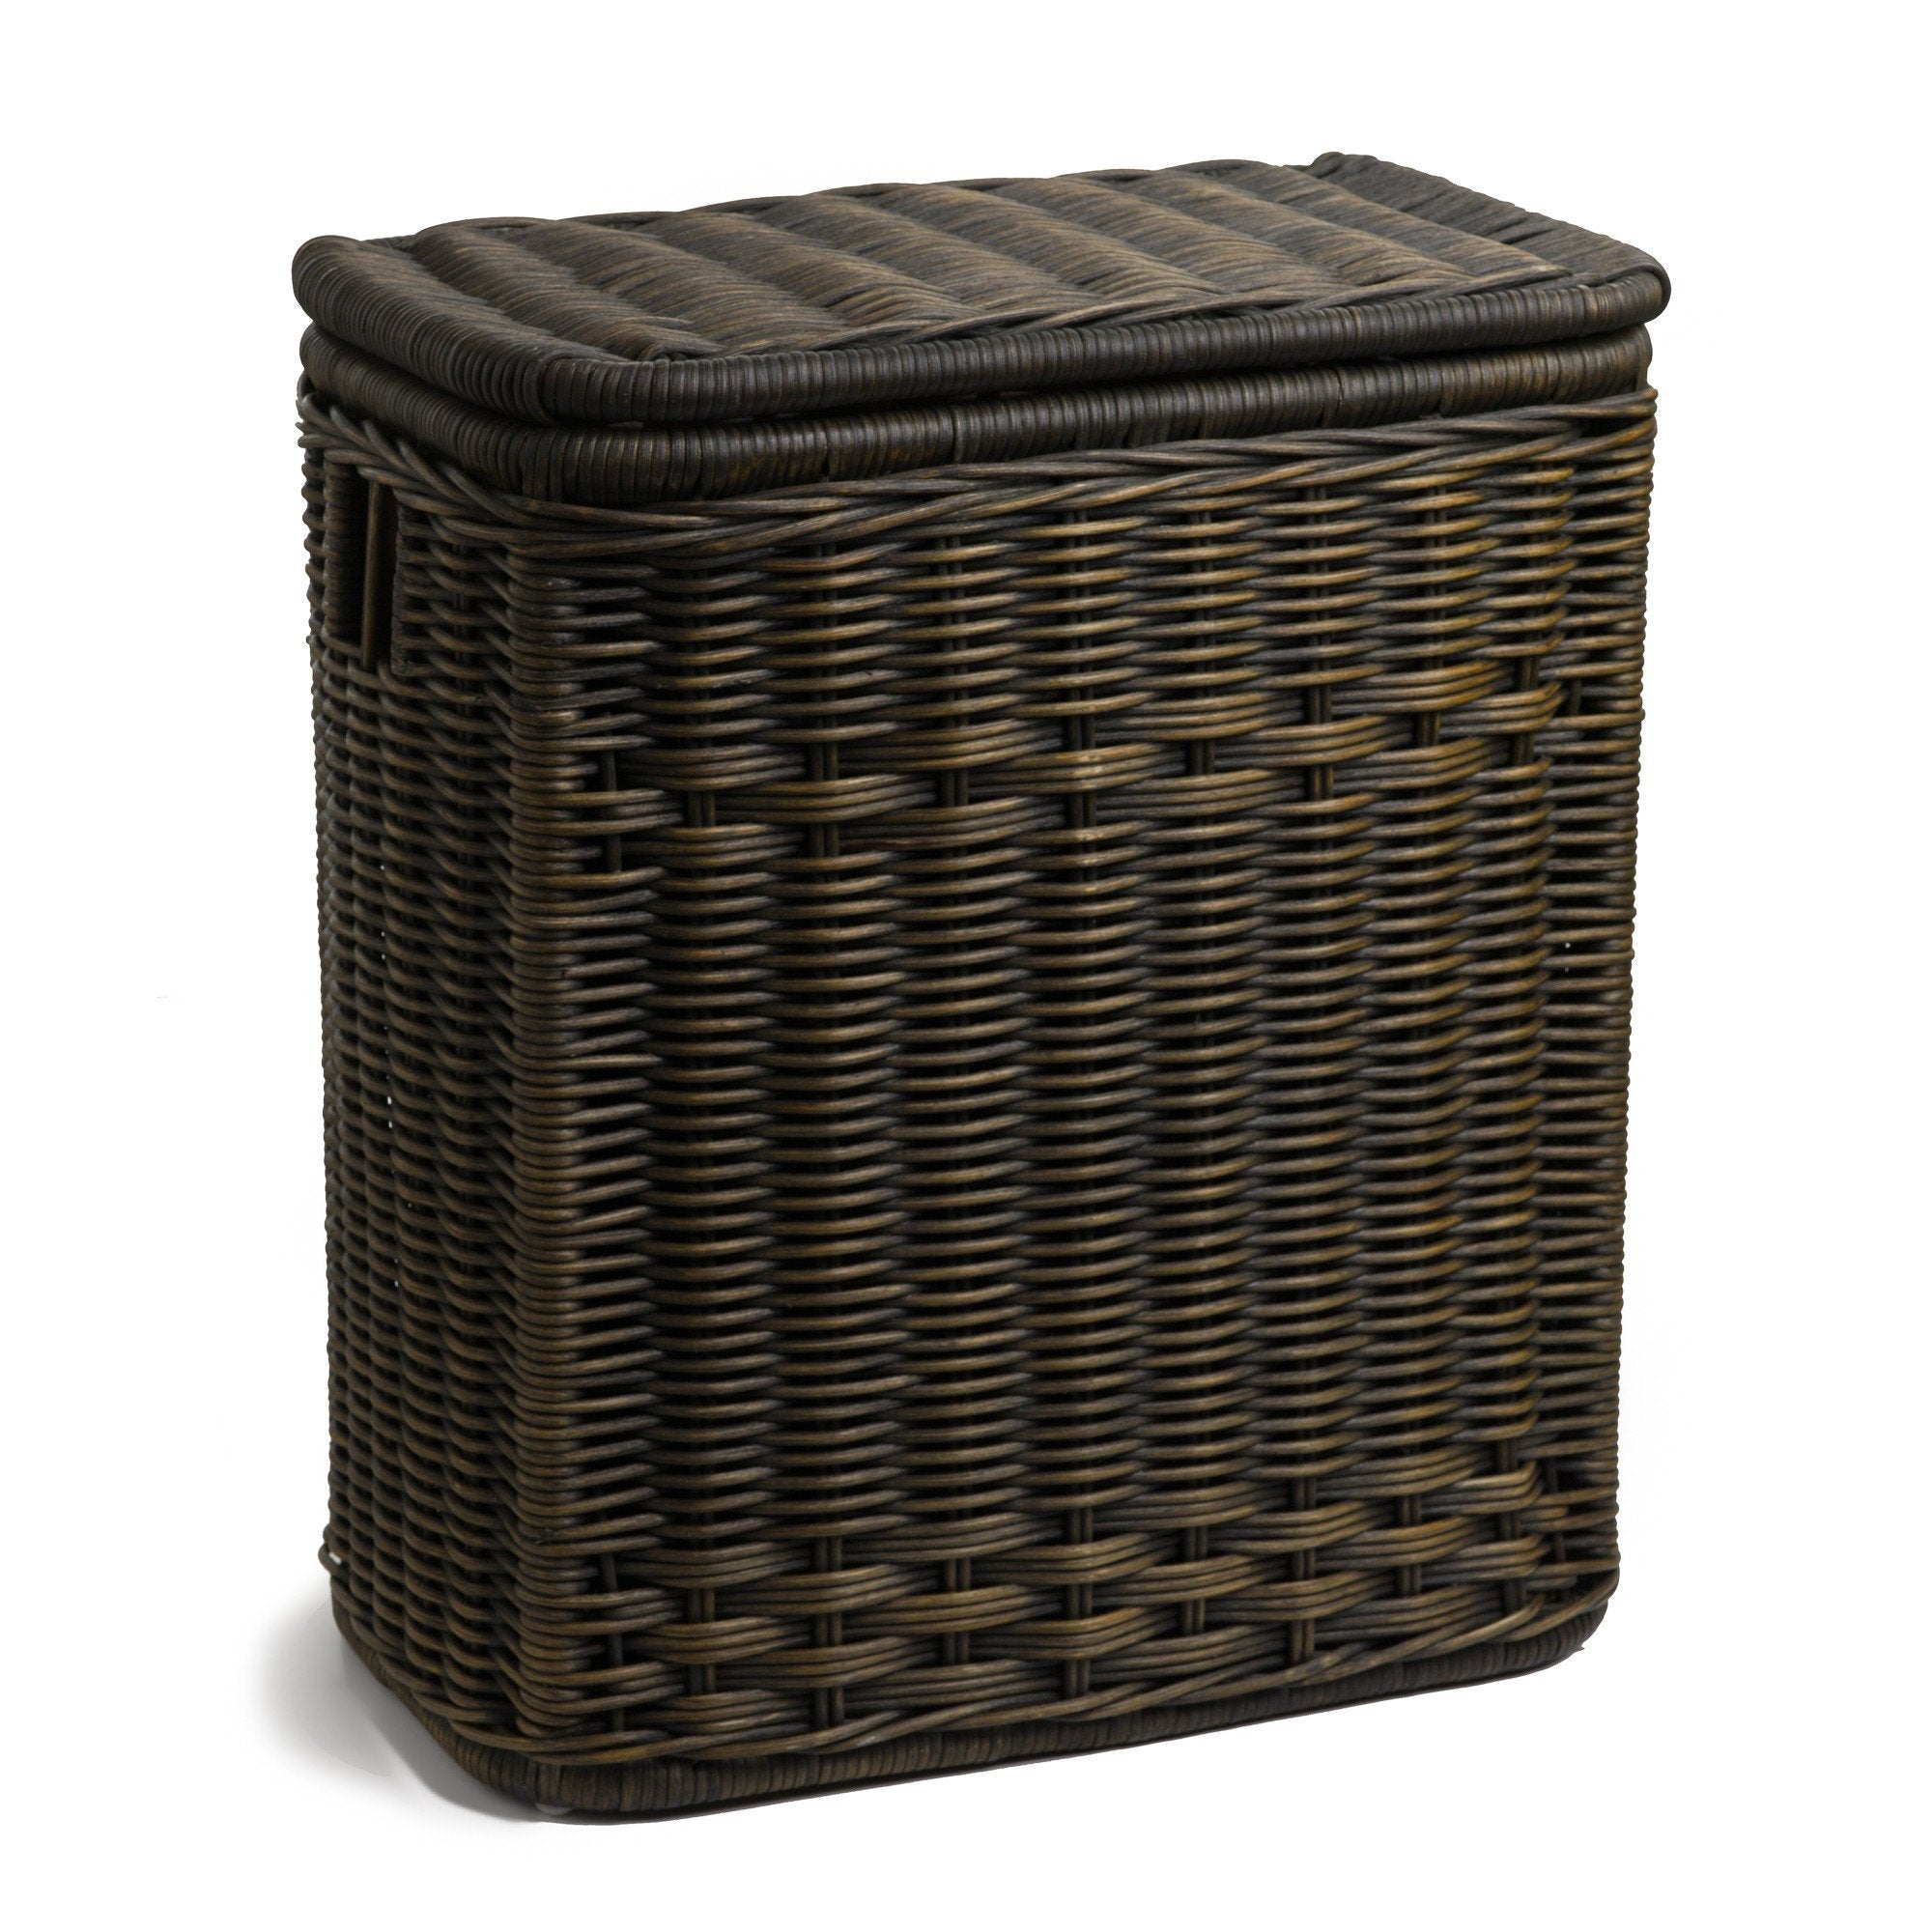 Round wicker laundry hamper clothes hamper the basket lady - Rattan laundry basket with lid ...